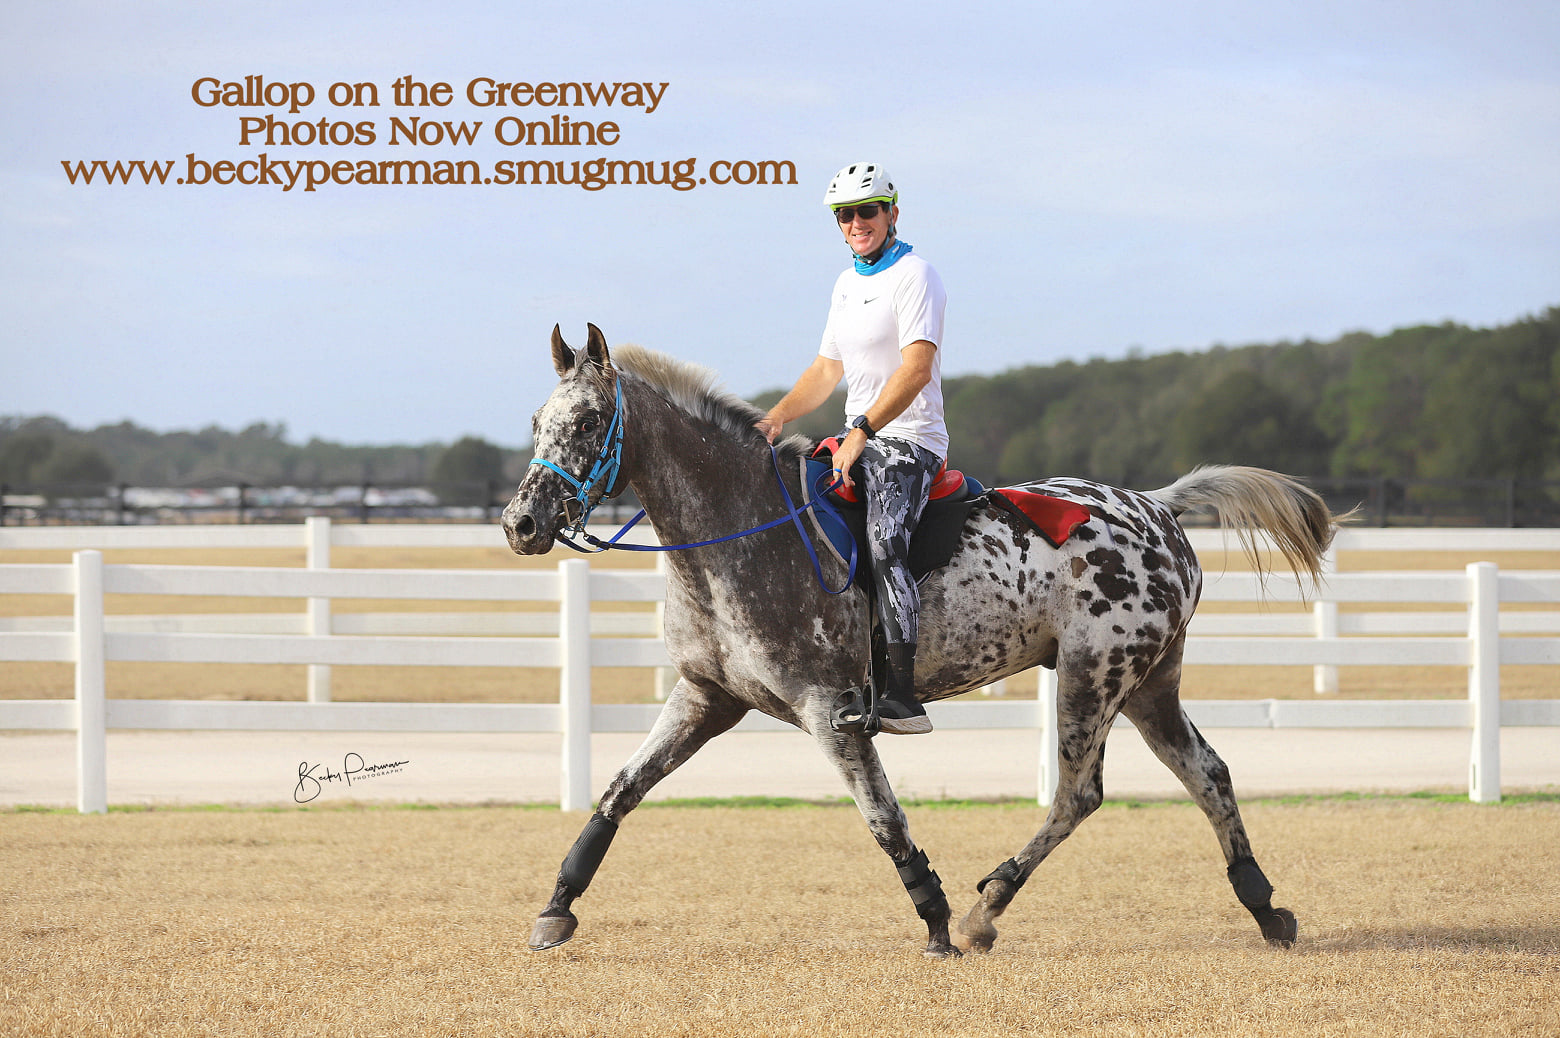 Gallop on the Greenway Pioneer IDR Multi Day10/25/50/75/100, Ocala, FL @ Florida Horse Park